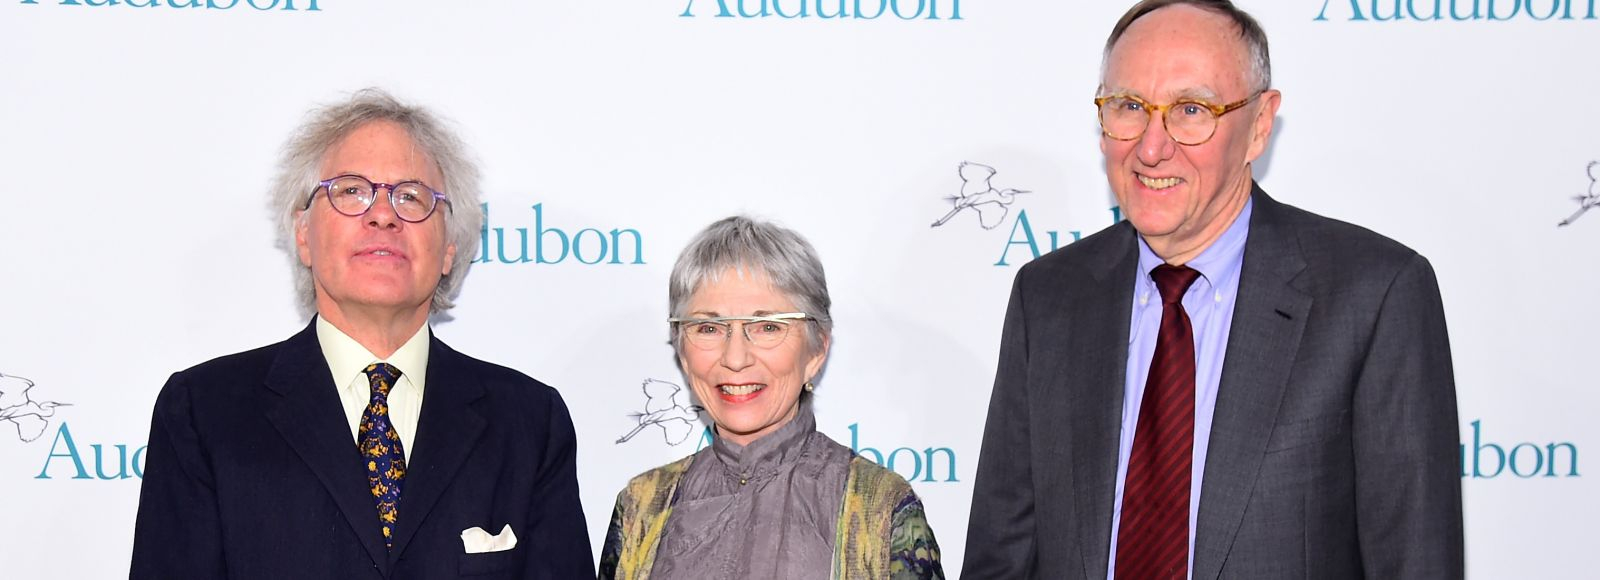 Two men and a woman stand in front of a white screen with the logo of Audubon